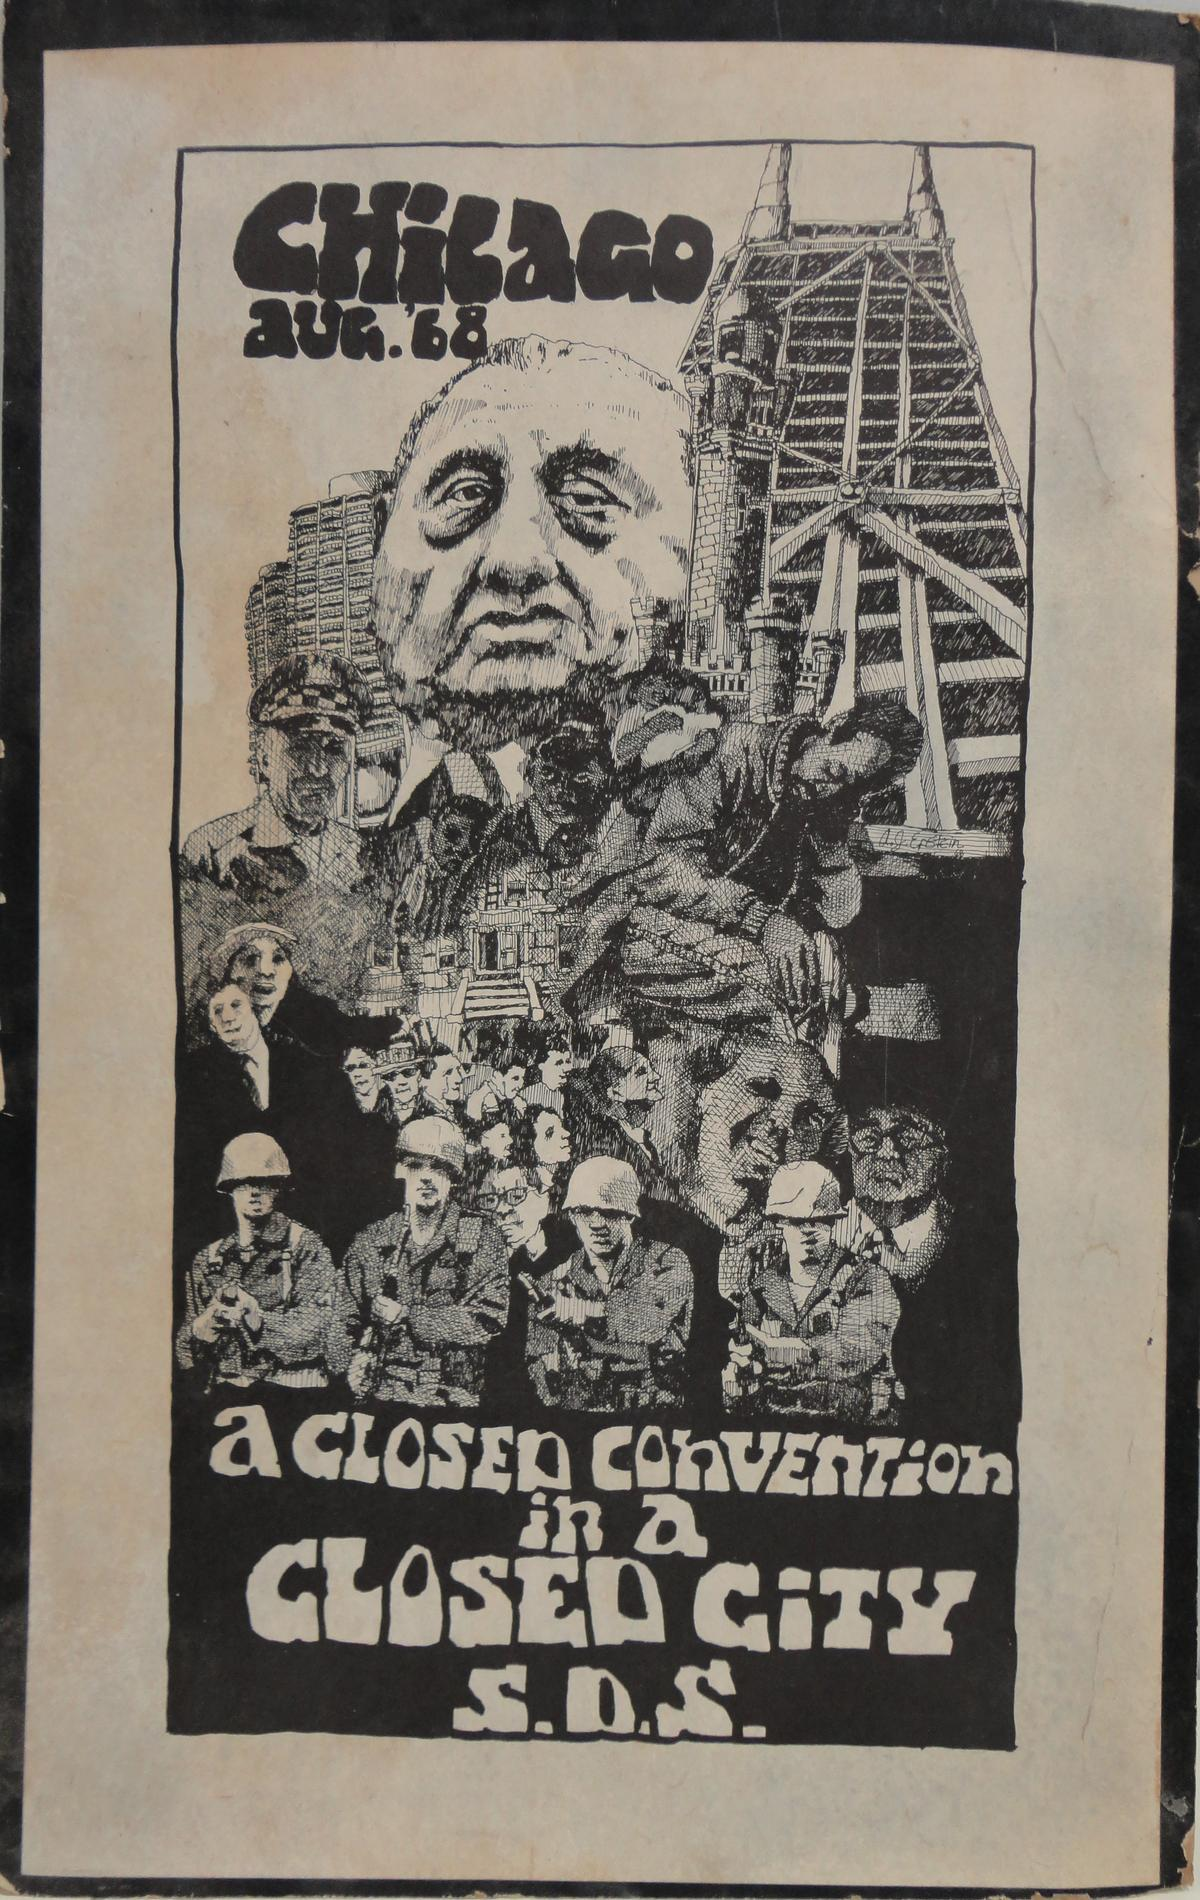 Chicago Aug. 68: A Closed Convention in a Closed City, S.D.S.